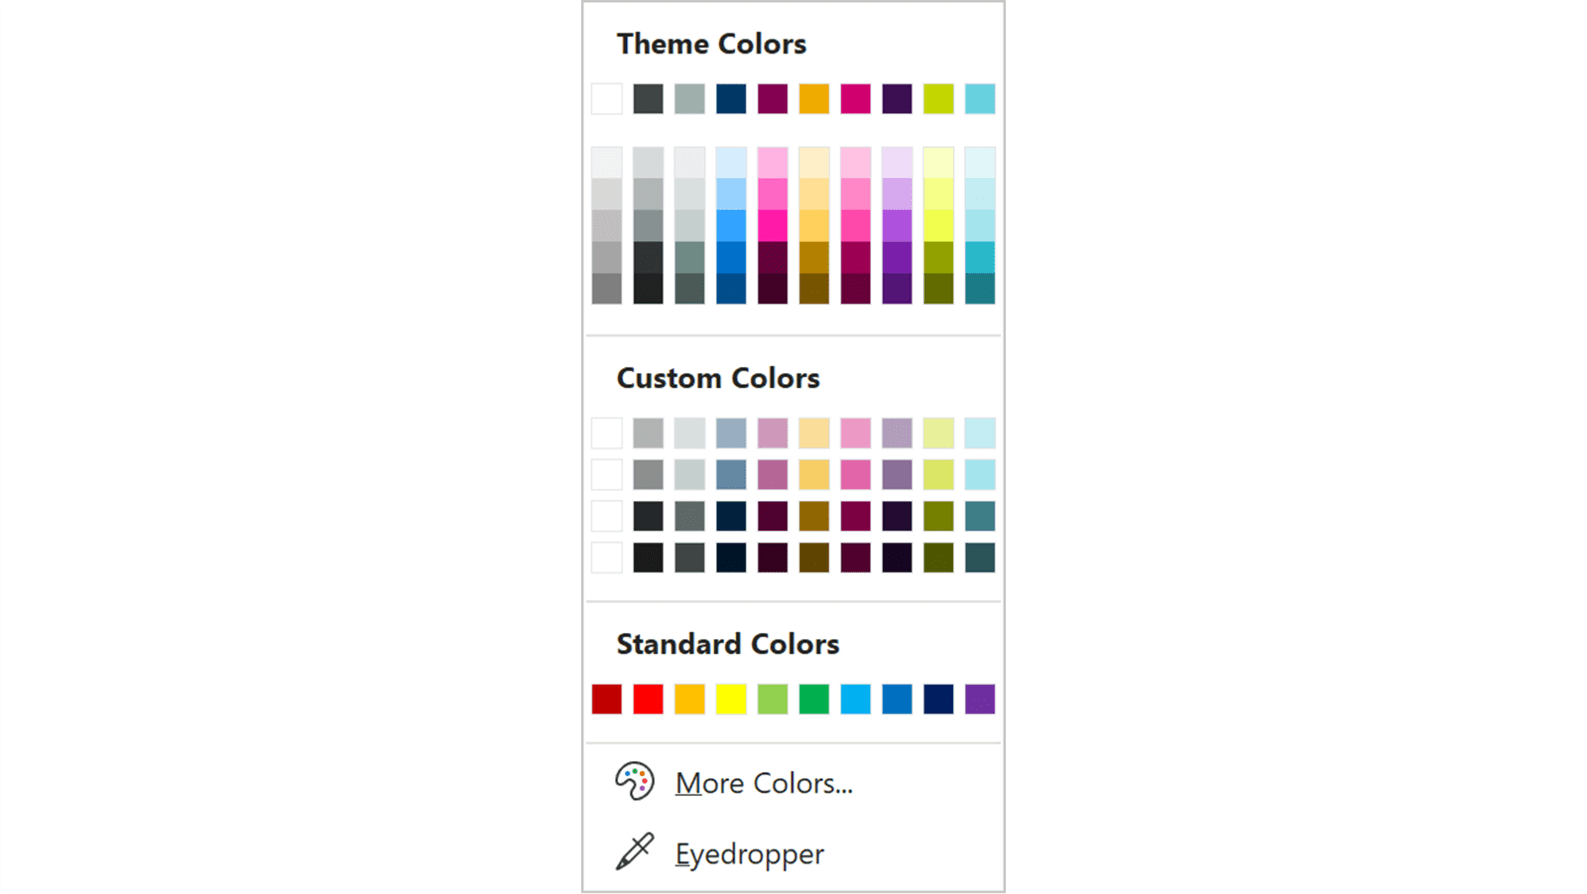 Screenshot of the Theme Colors panel in PowerPoint showing the BrightCarbon Custom Colors section.